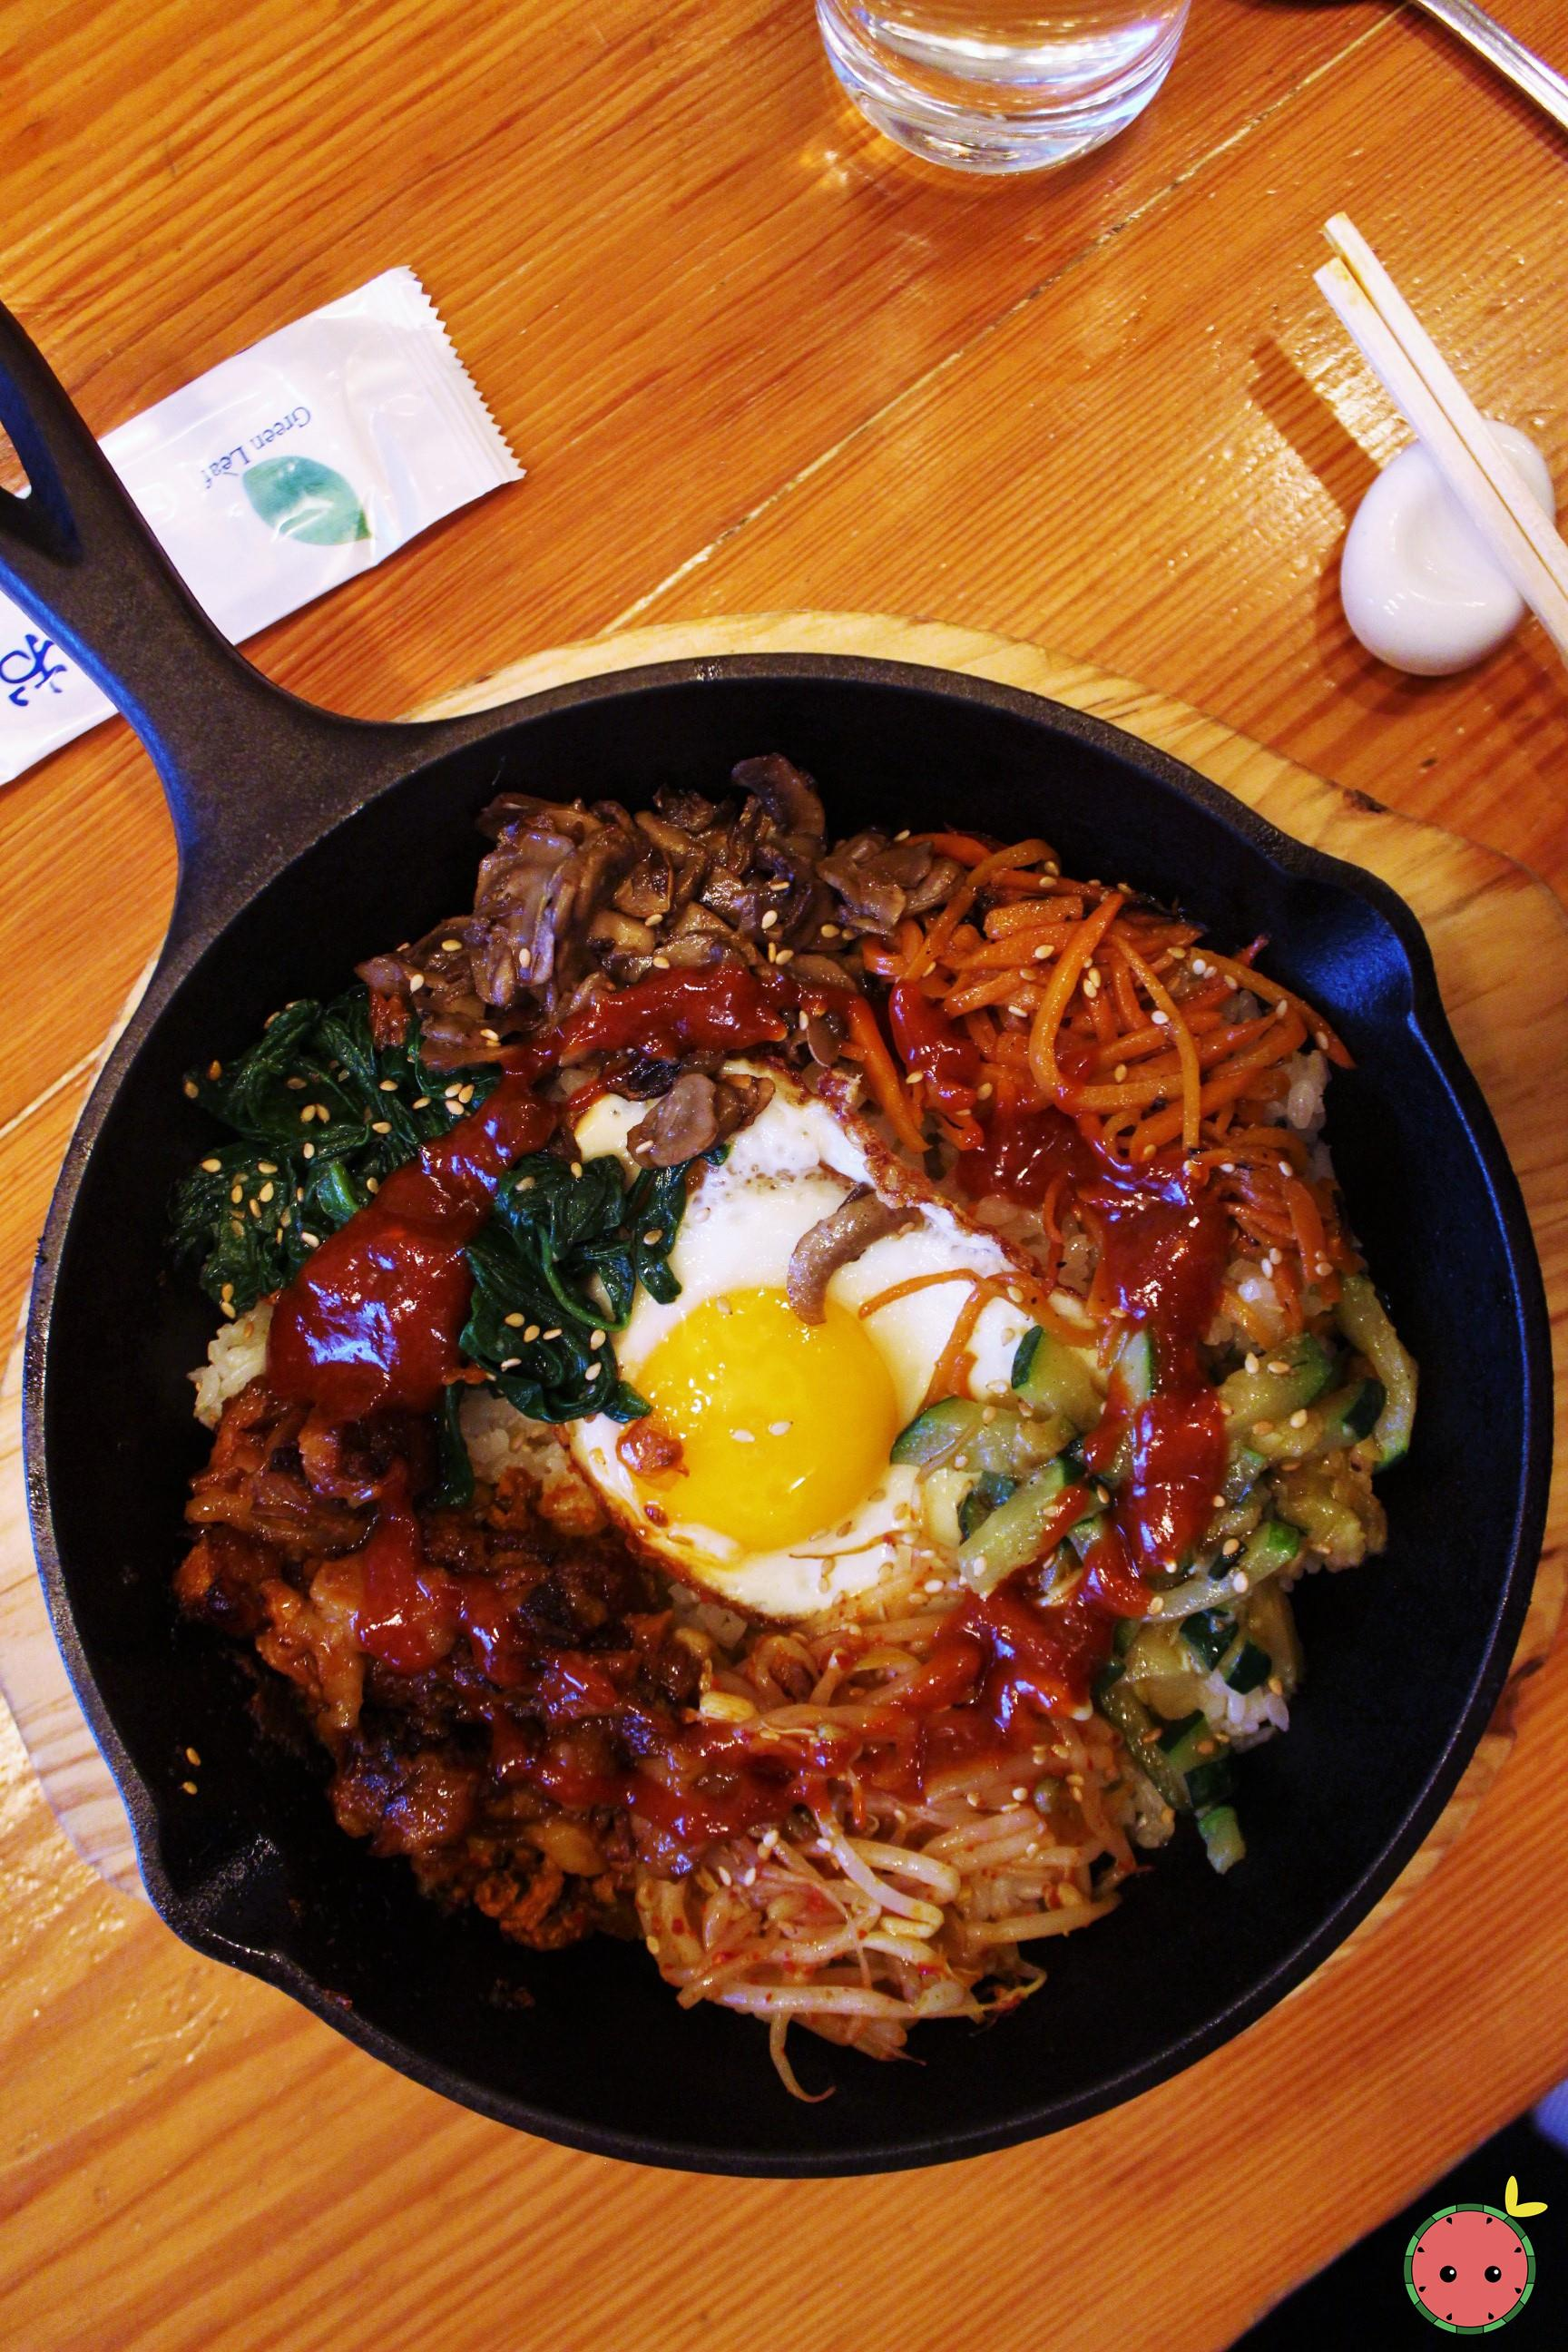 Beef bulgogi bibimbap in sizzling hot plate